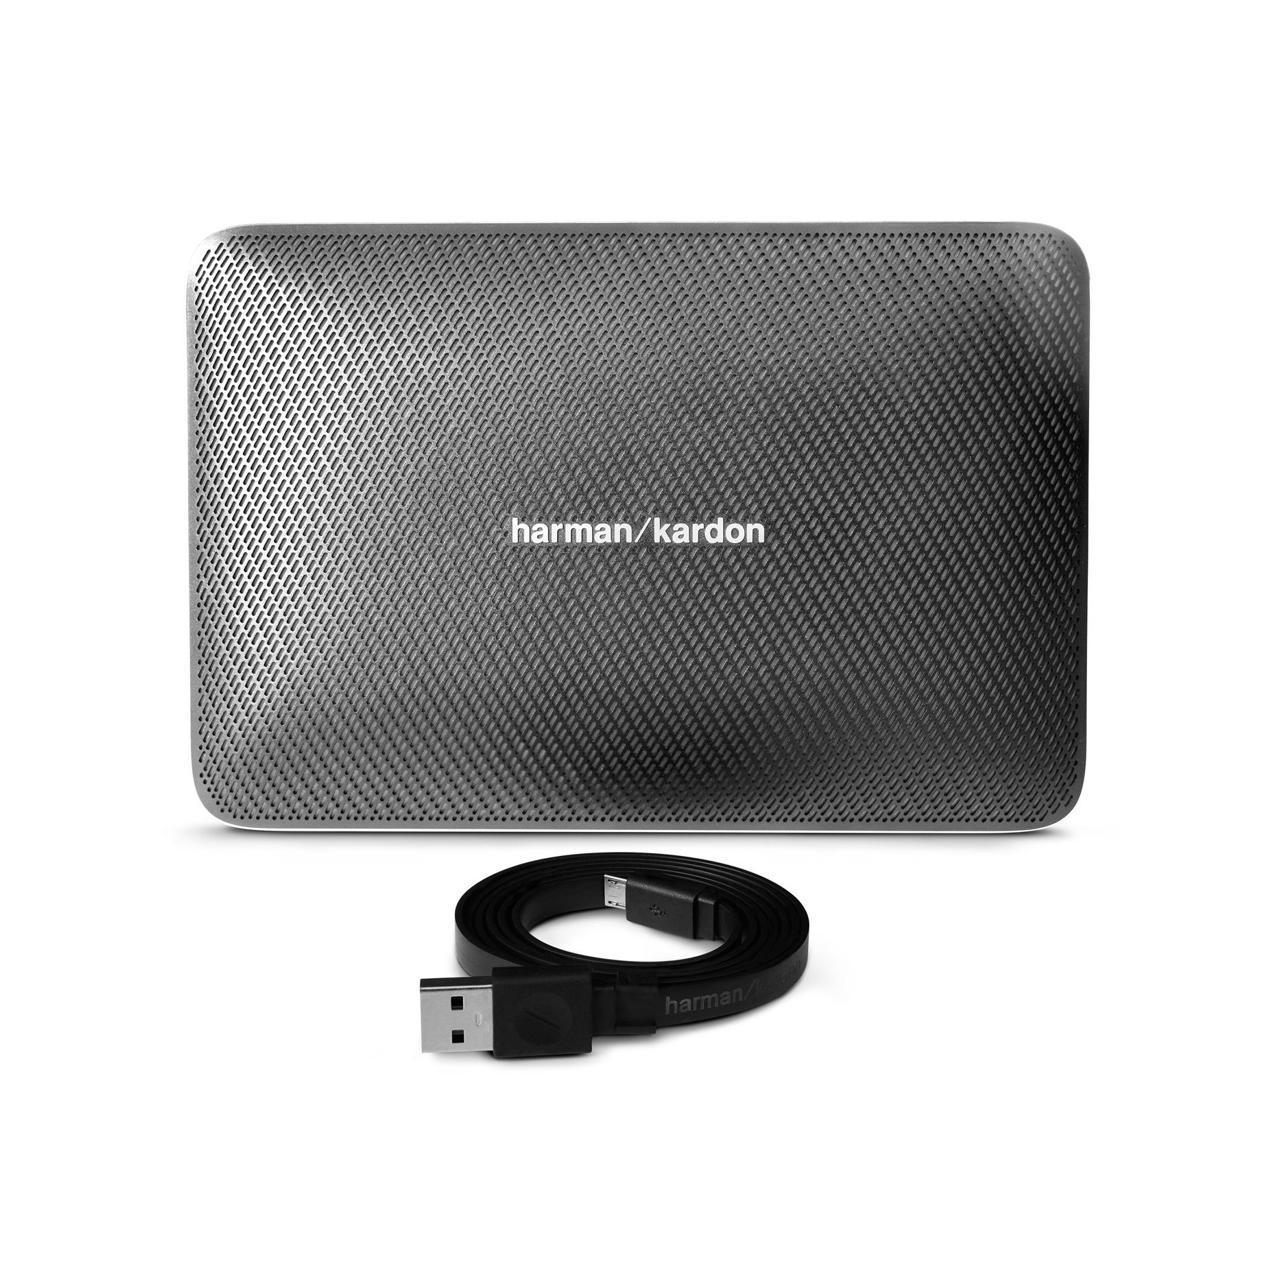 harman kardon esquire 2 portable bluetooth speaker. Black Bedroom Furniture Sets. Home Design Ideas